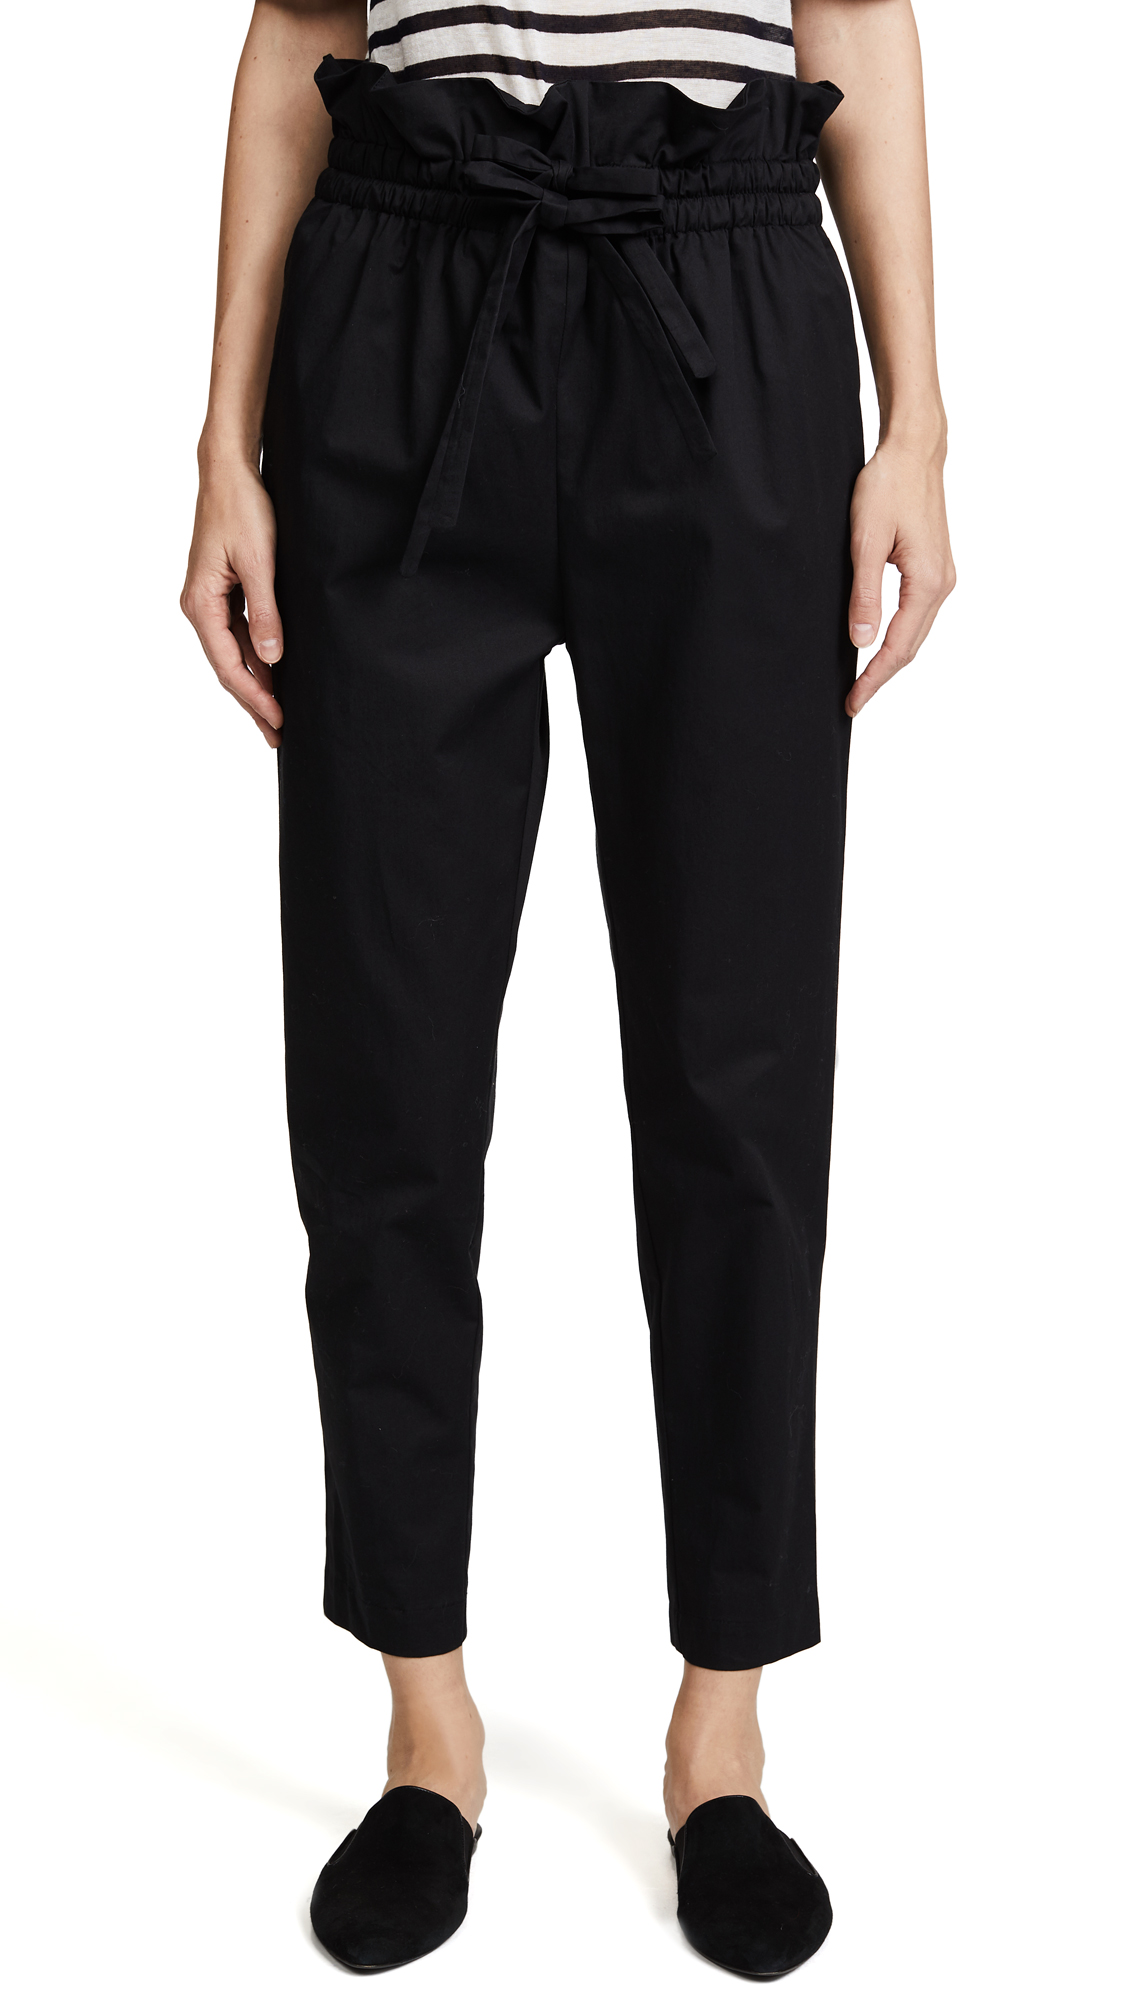 Emerson Thorpe Heidi Paper Bag Pants - Black